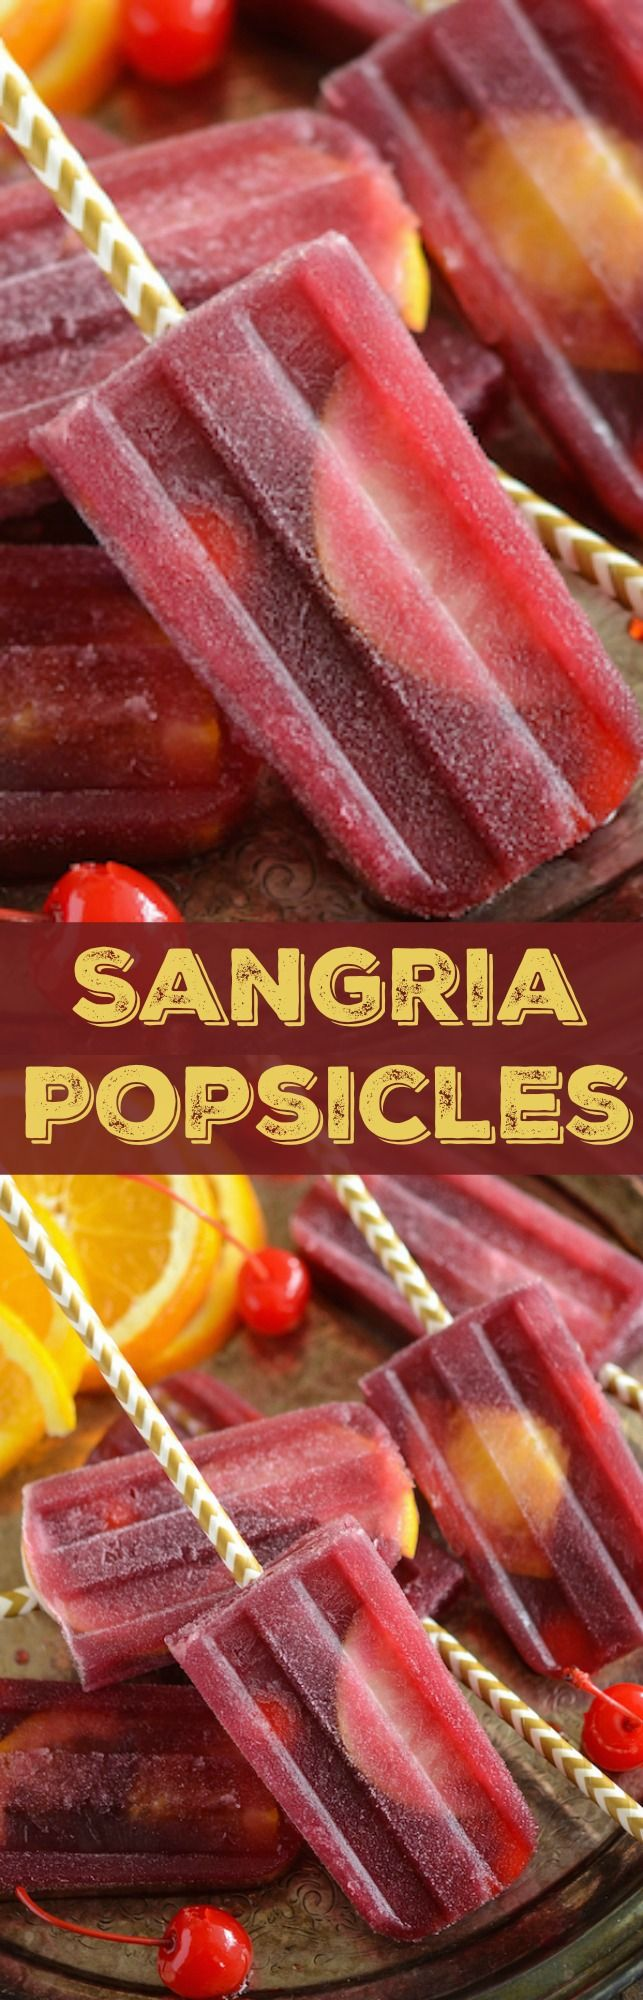 picture Sangria Fruitsicles